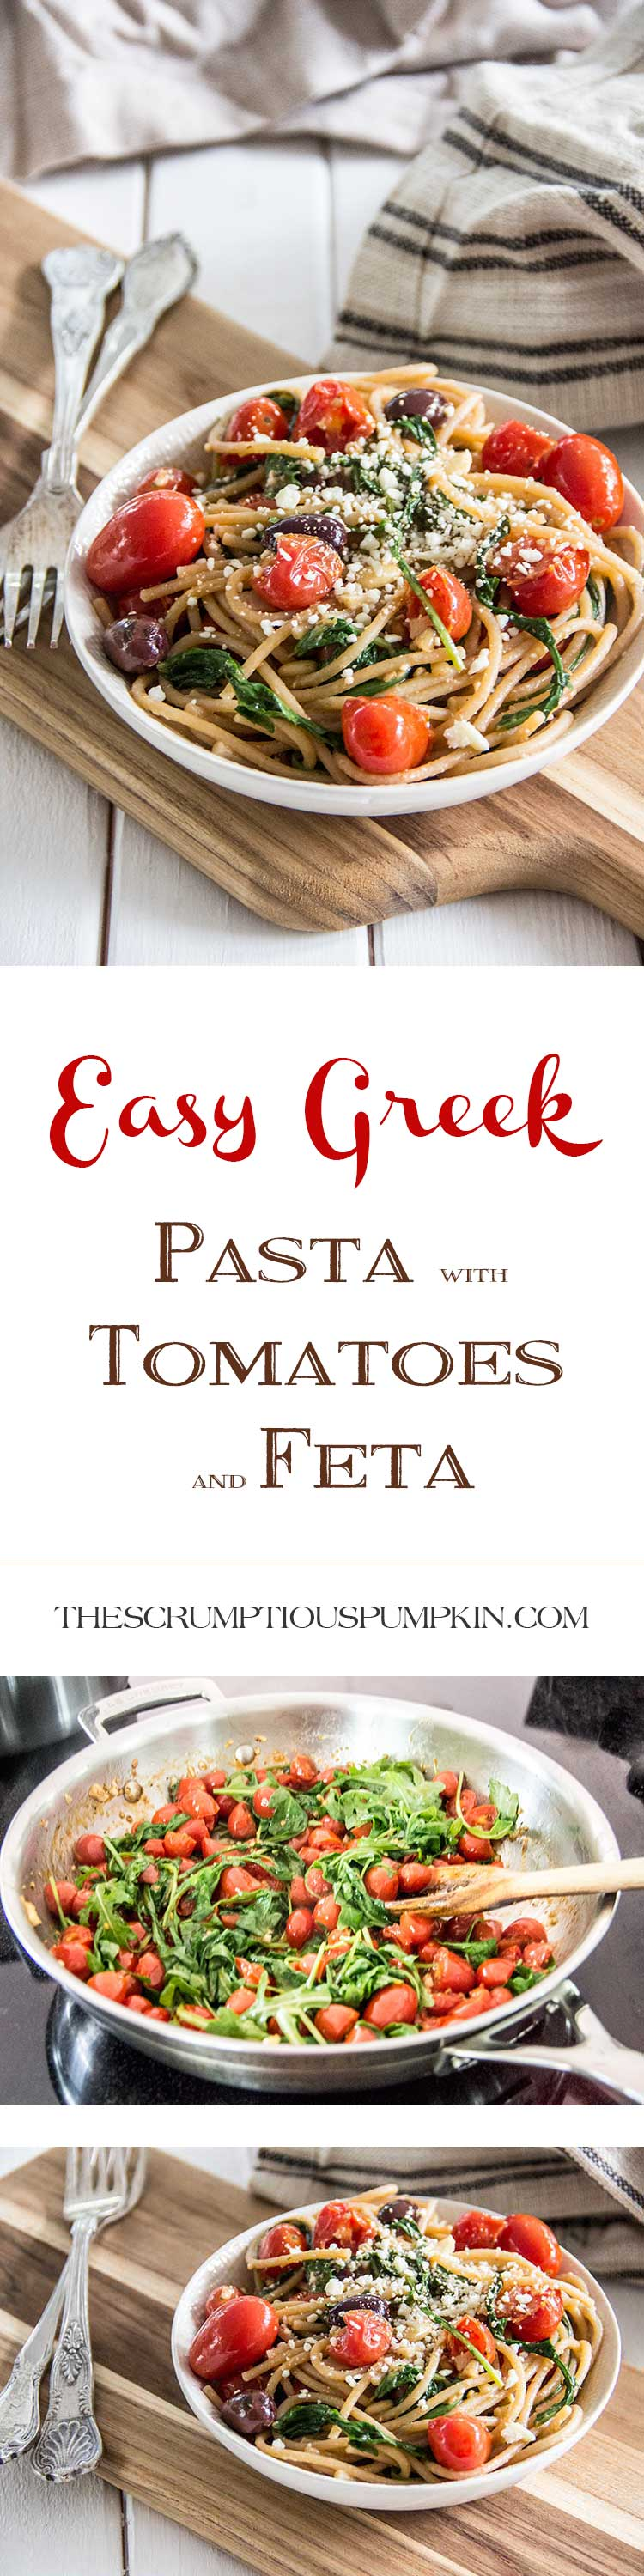 20-minute-easy-greek-pasta-with-tomatoes-and-feta